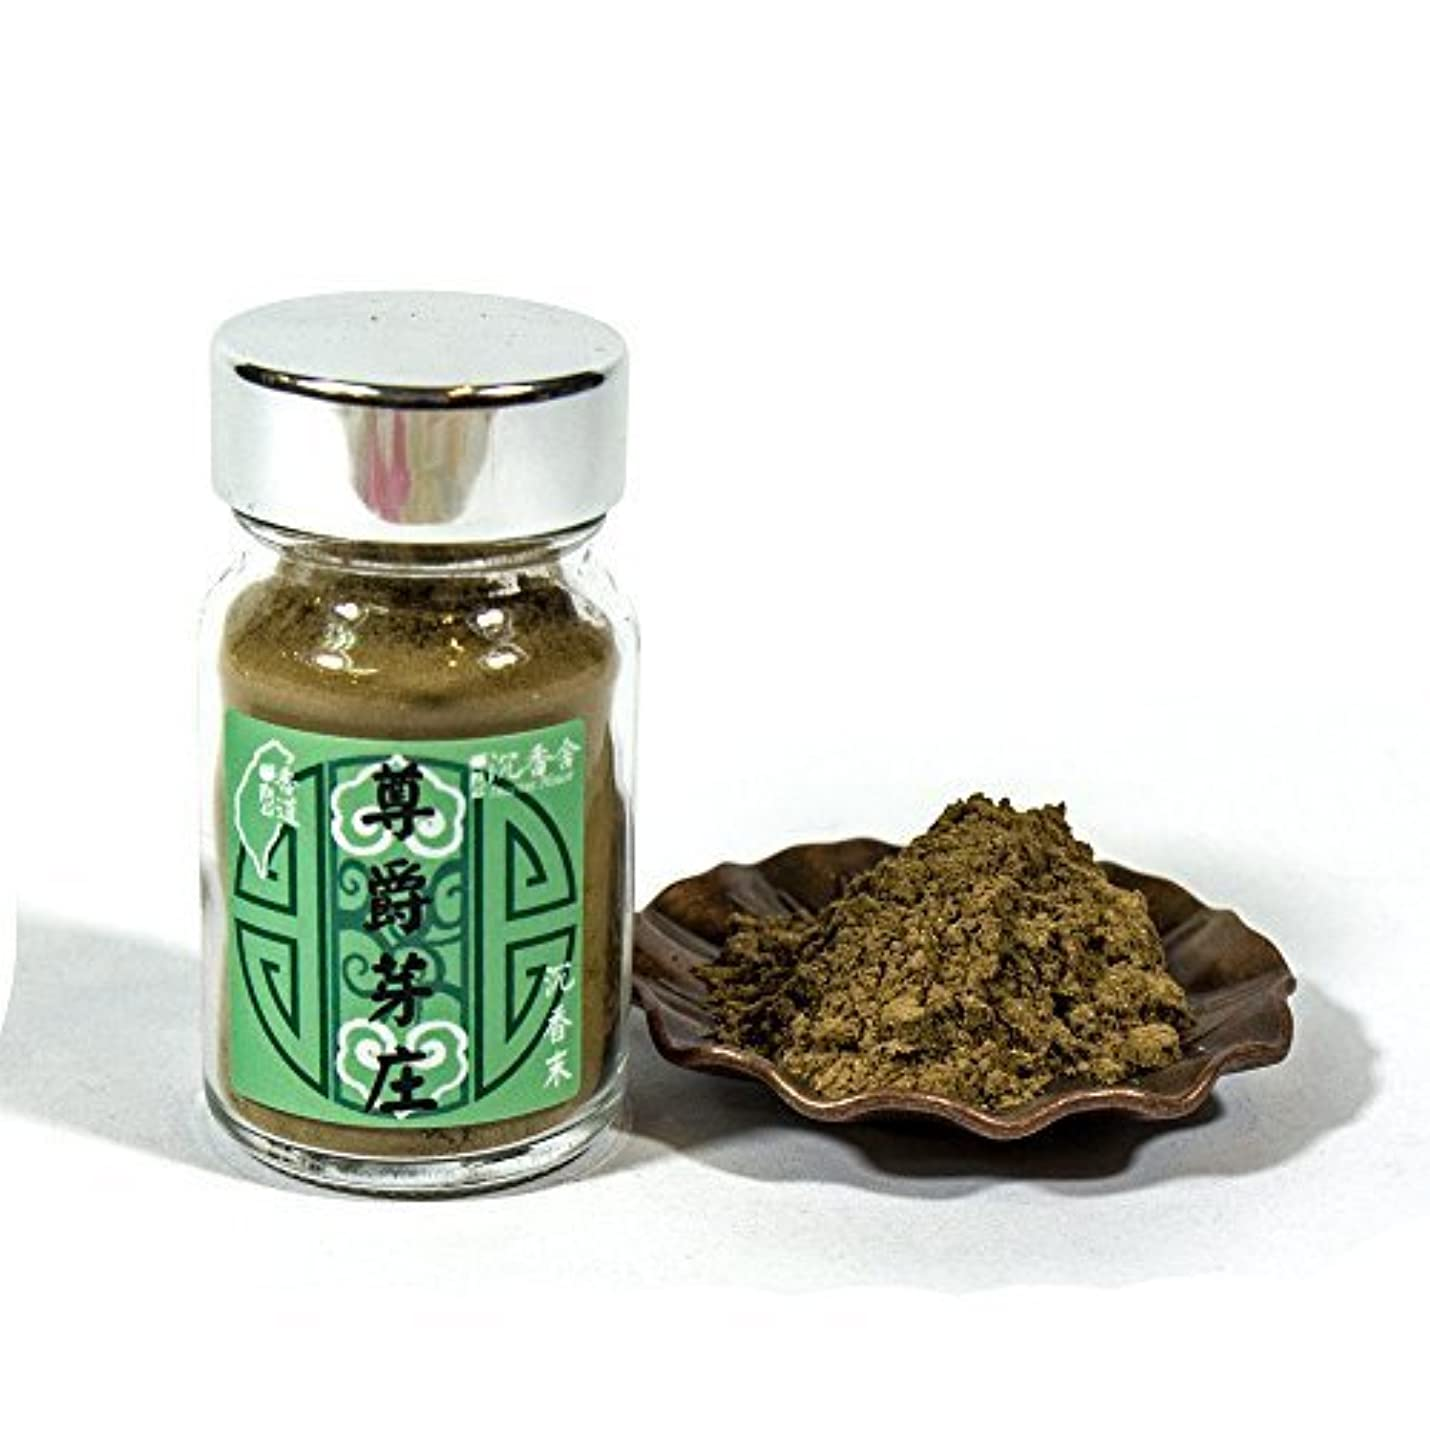 資金農夫行列Agarwood Aloeswood Top Grade Old Stock NhaTrang Chen Xiang Incense Powder 10g by IncenseHouse - Raw Material [...